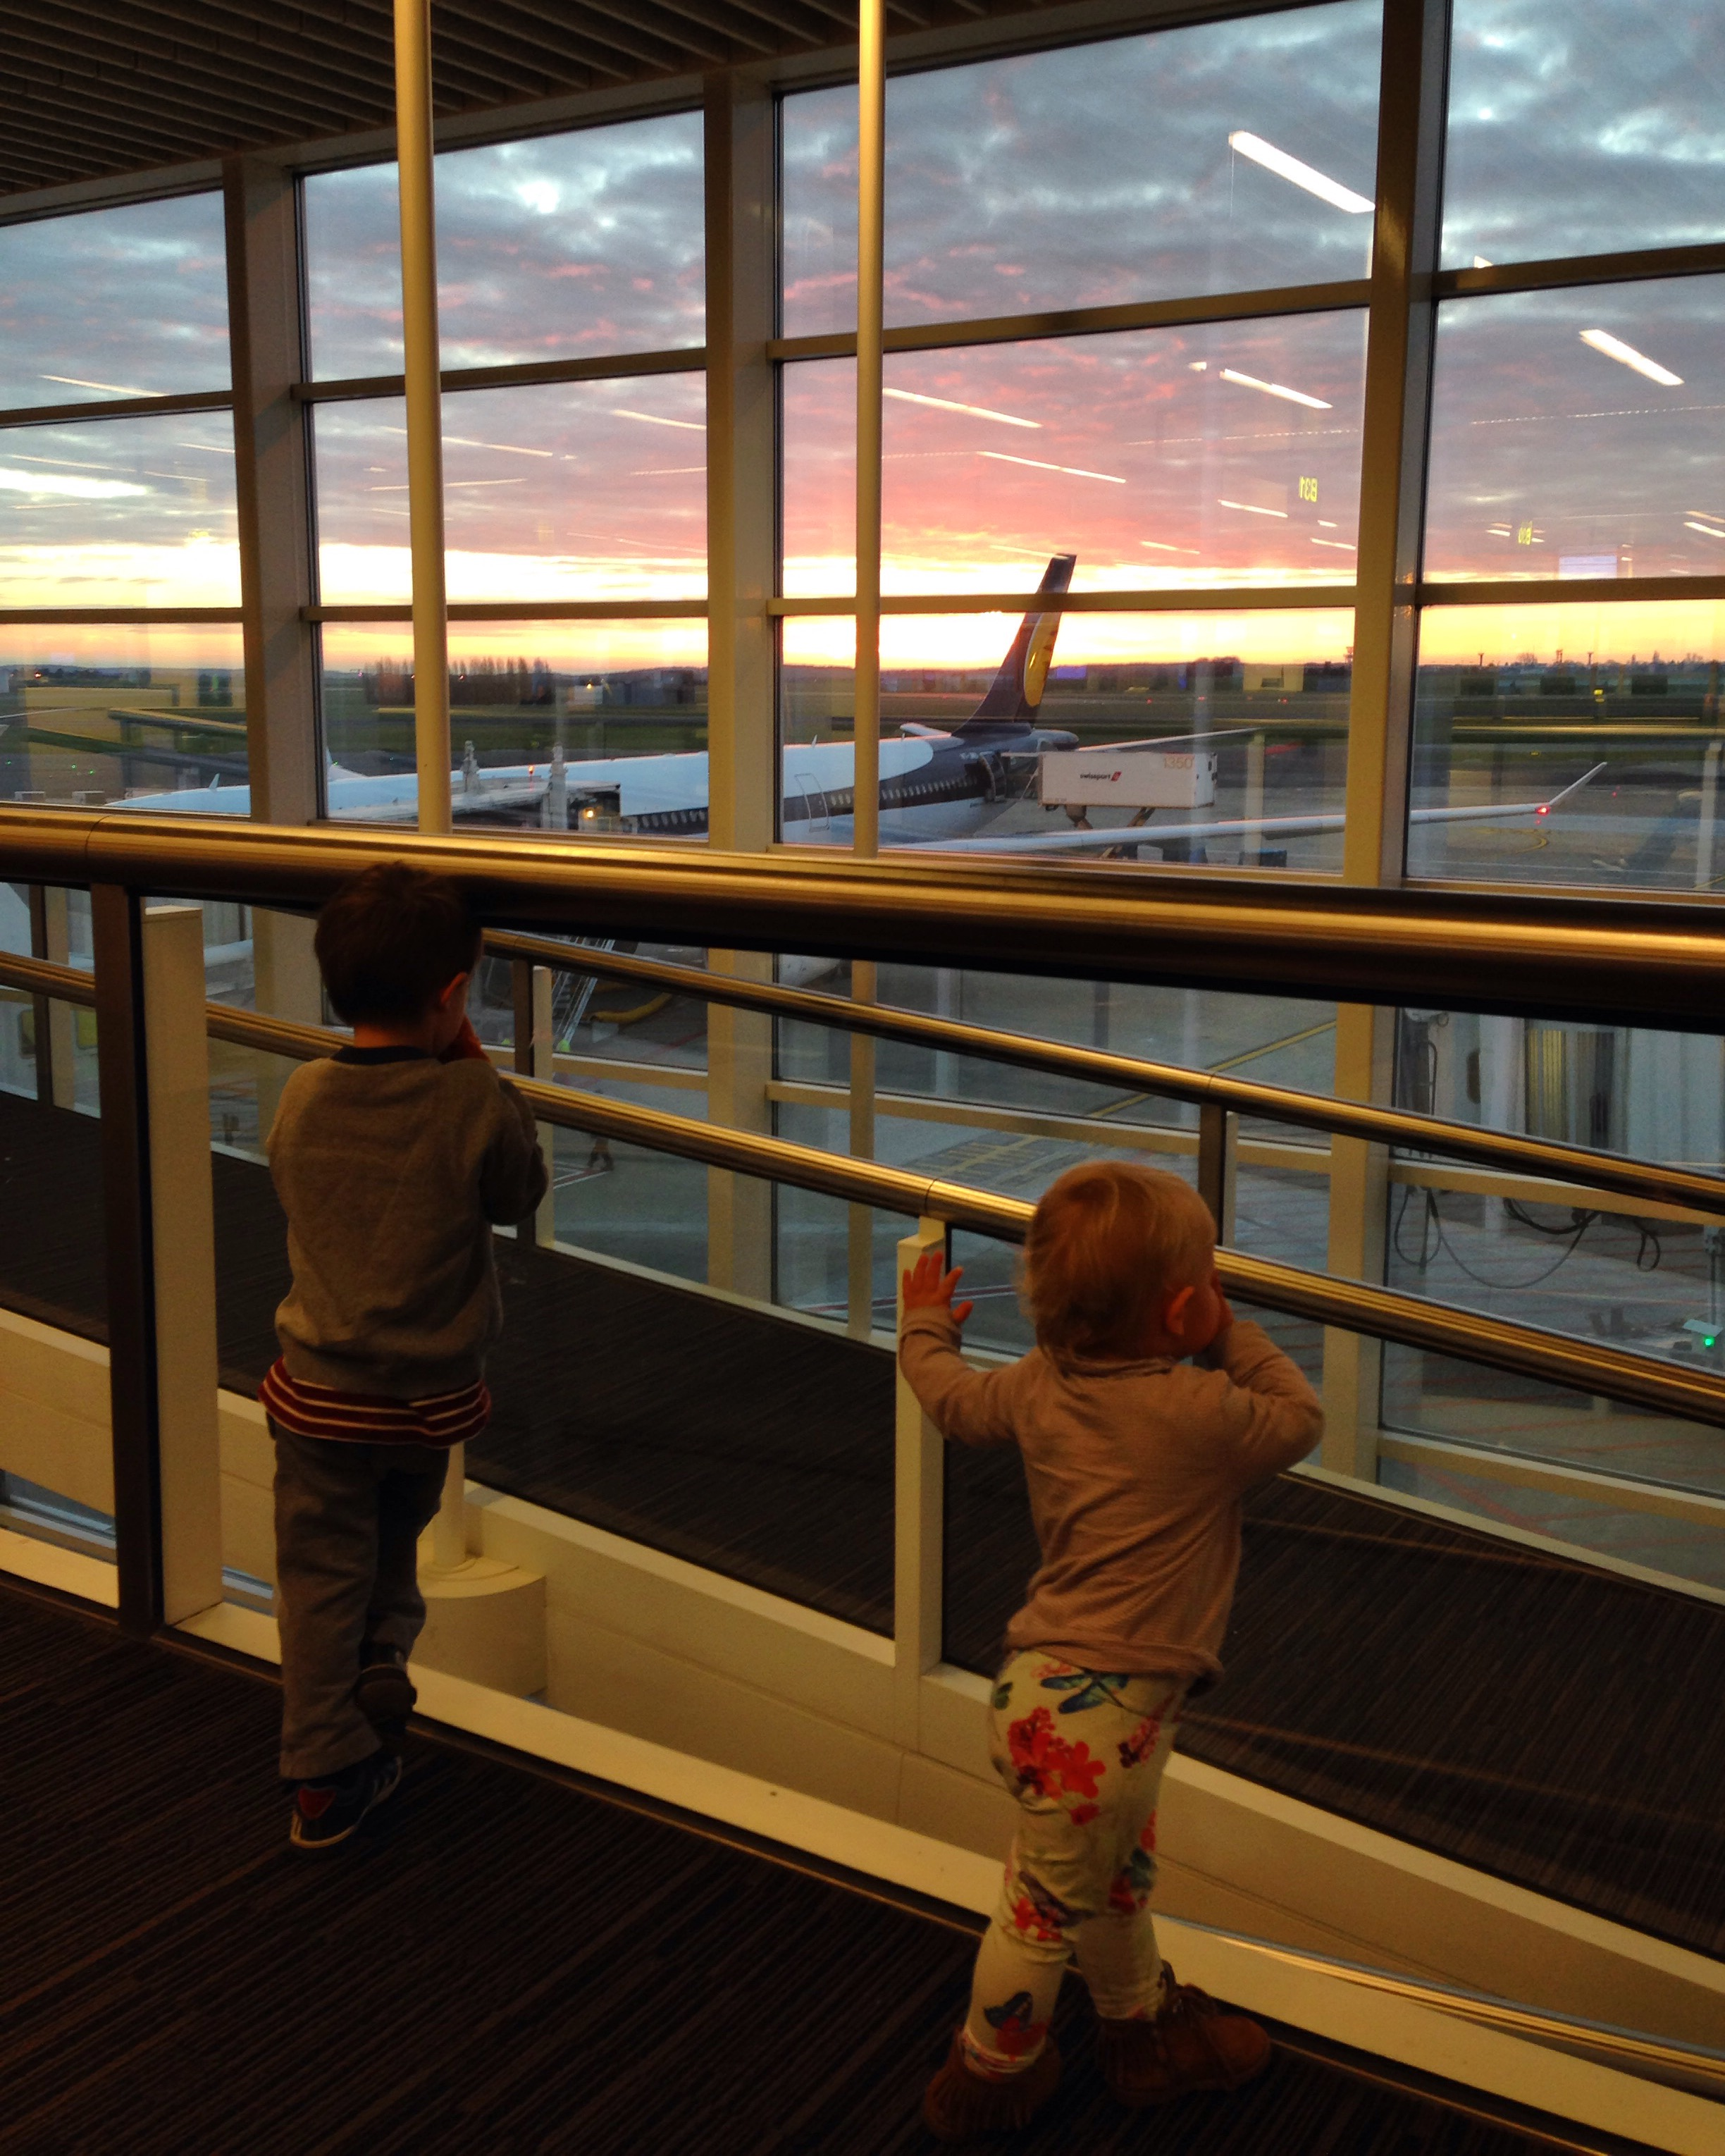 A beautiful sunrise at Brussels Airport